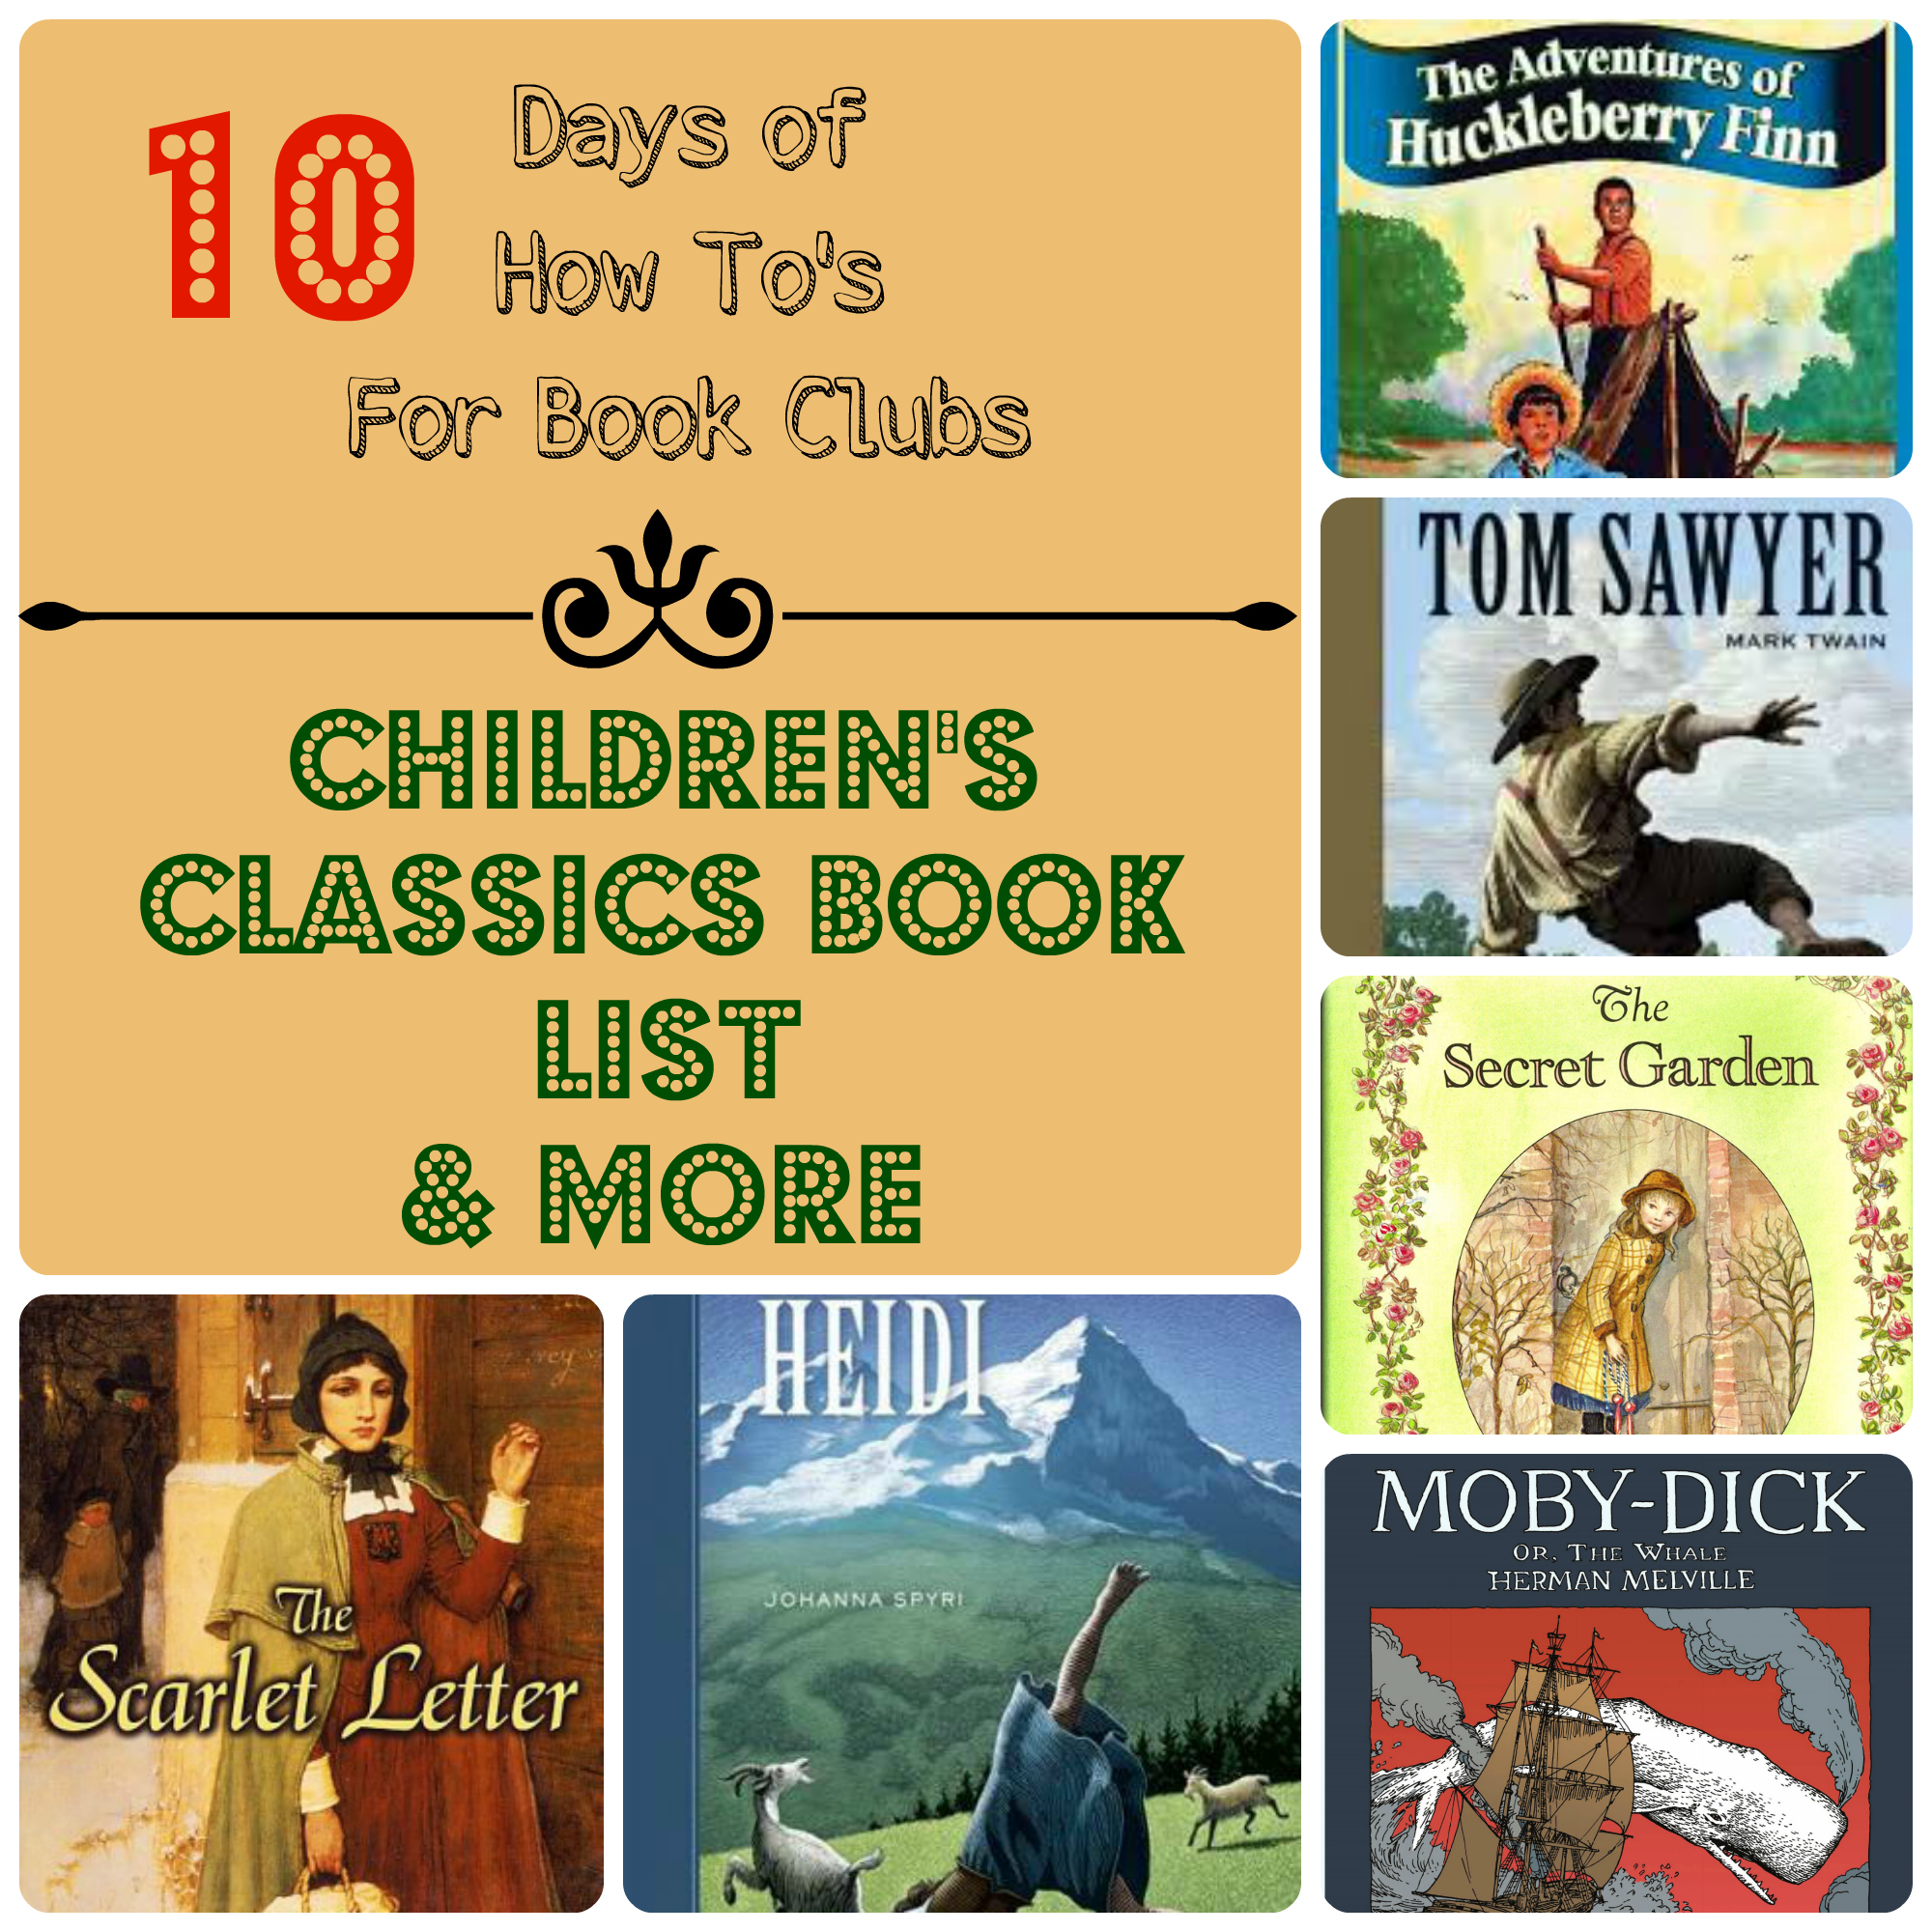 classics books classic children childrens literature club startsateight lists kid reading clubs age favorite finn read days around homeschool elementary